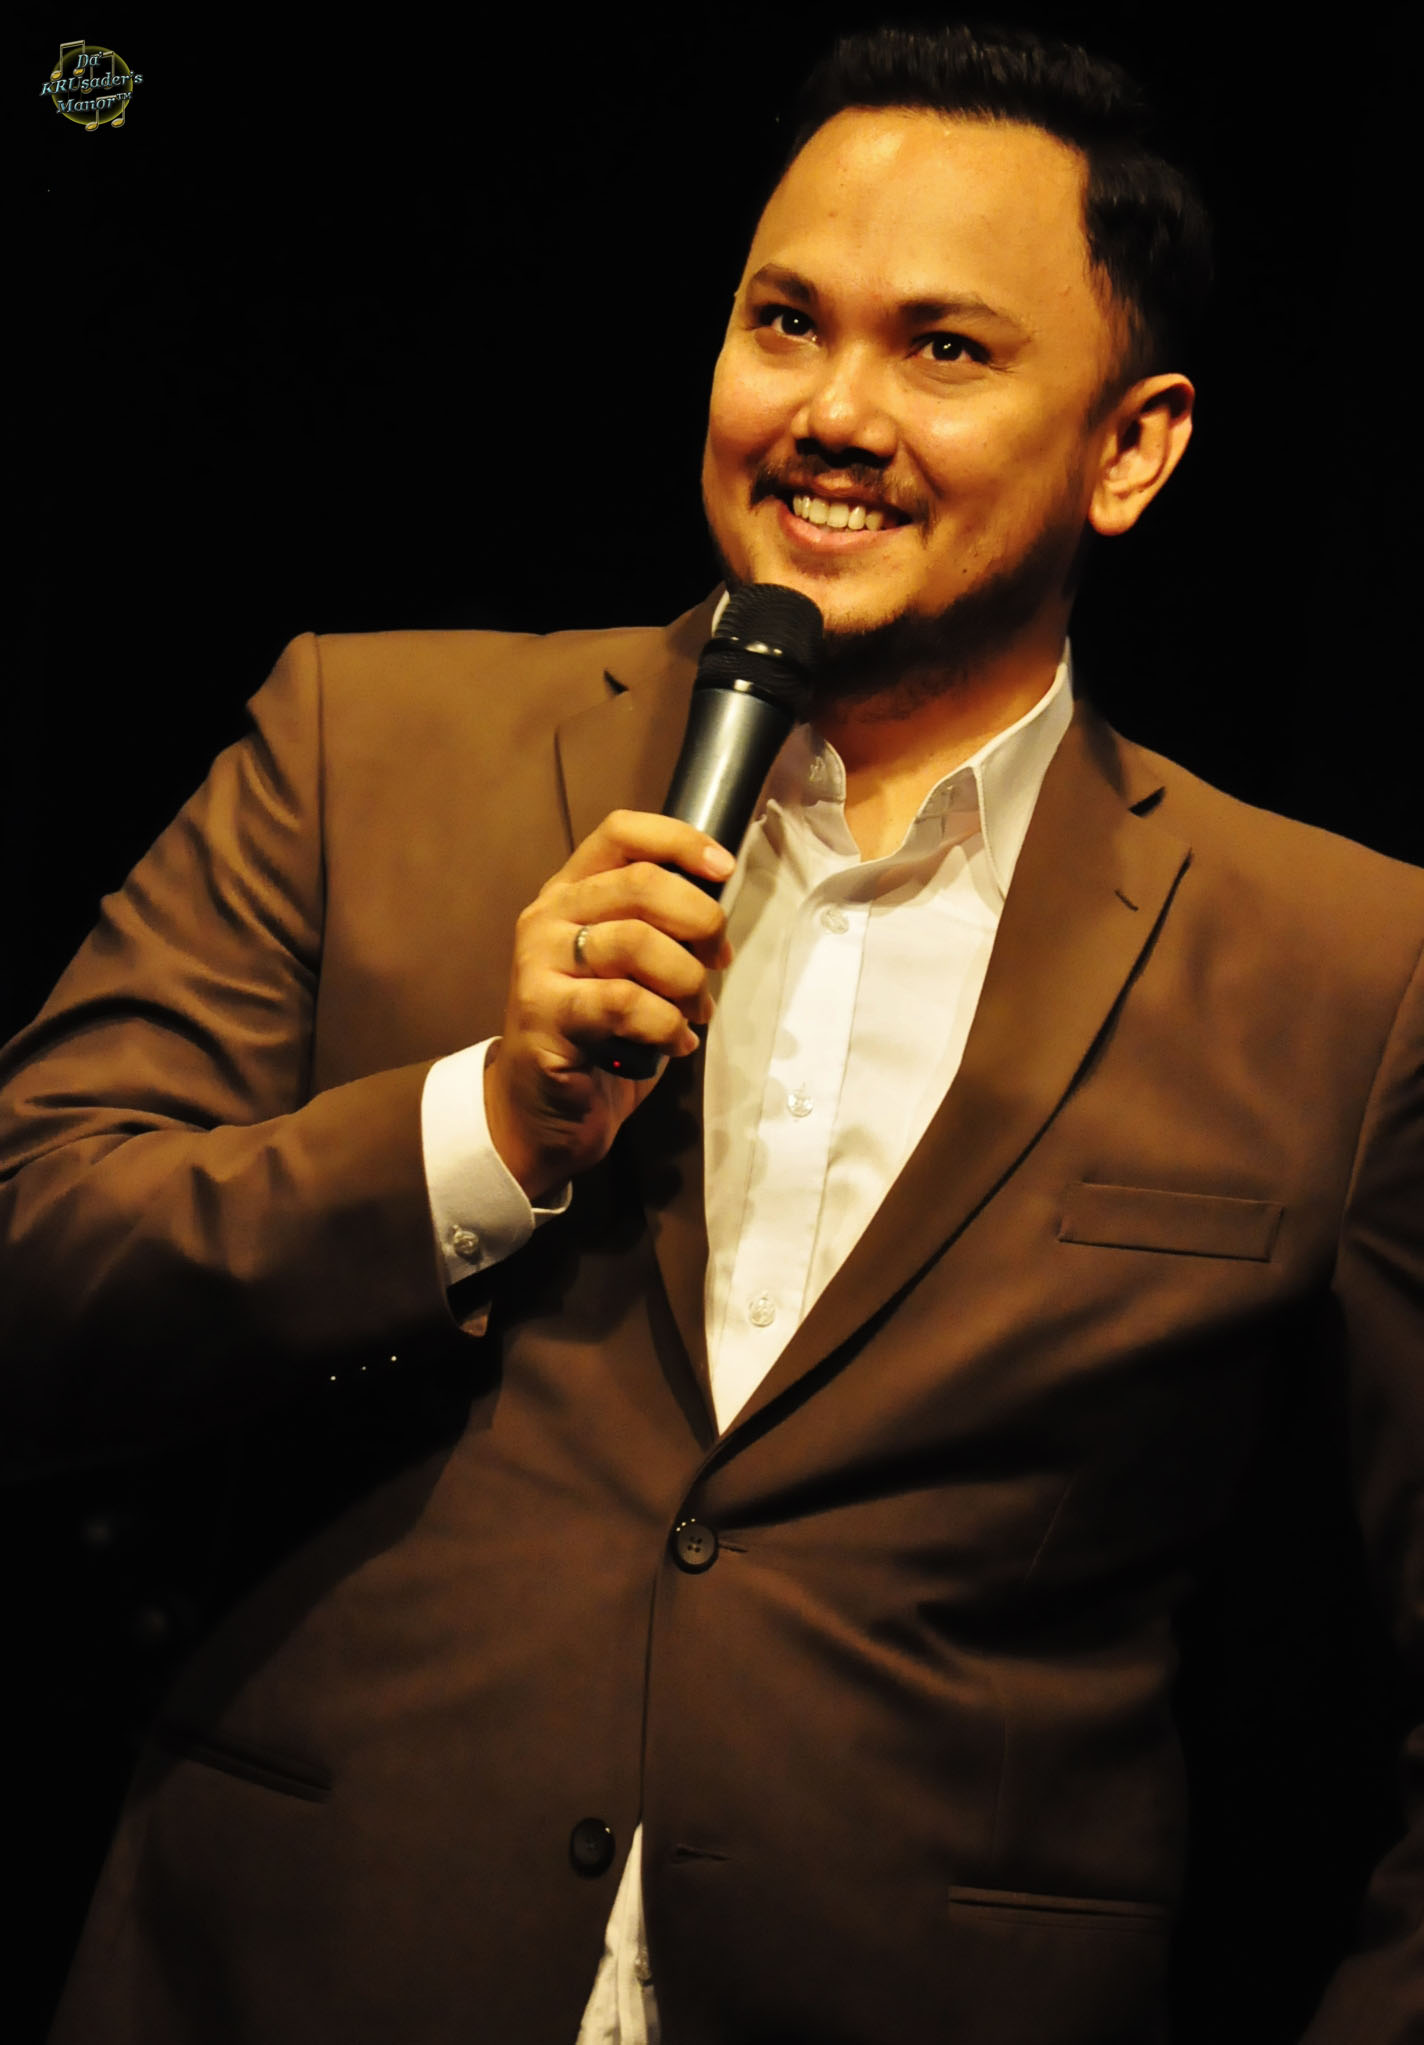 Imran Ajmain Setulus Kasih Album Launch 2014-04-19 031 – Da